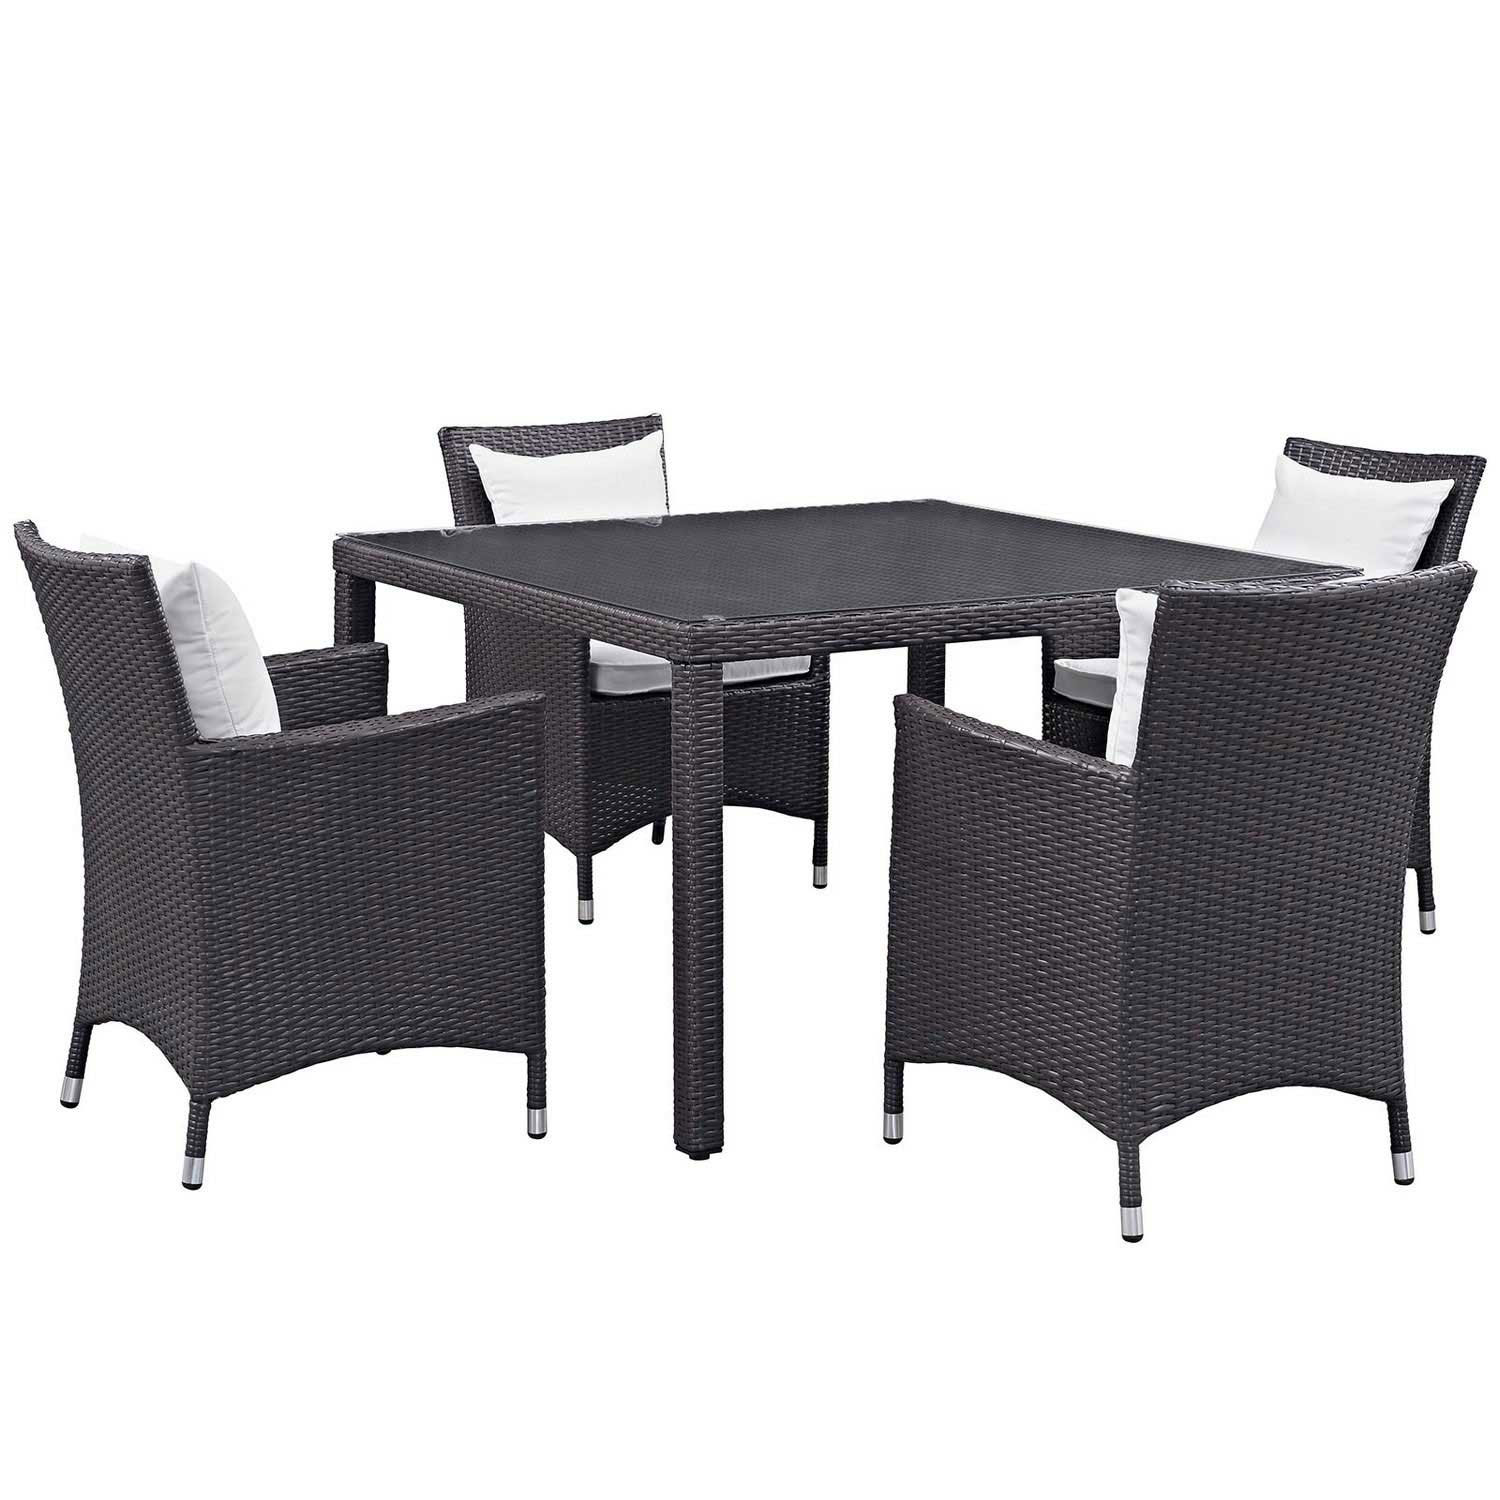 Modway Convene 5 Piece Outdoor Patio Dining Set - Espresso White